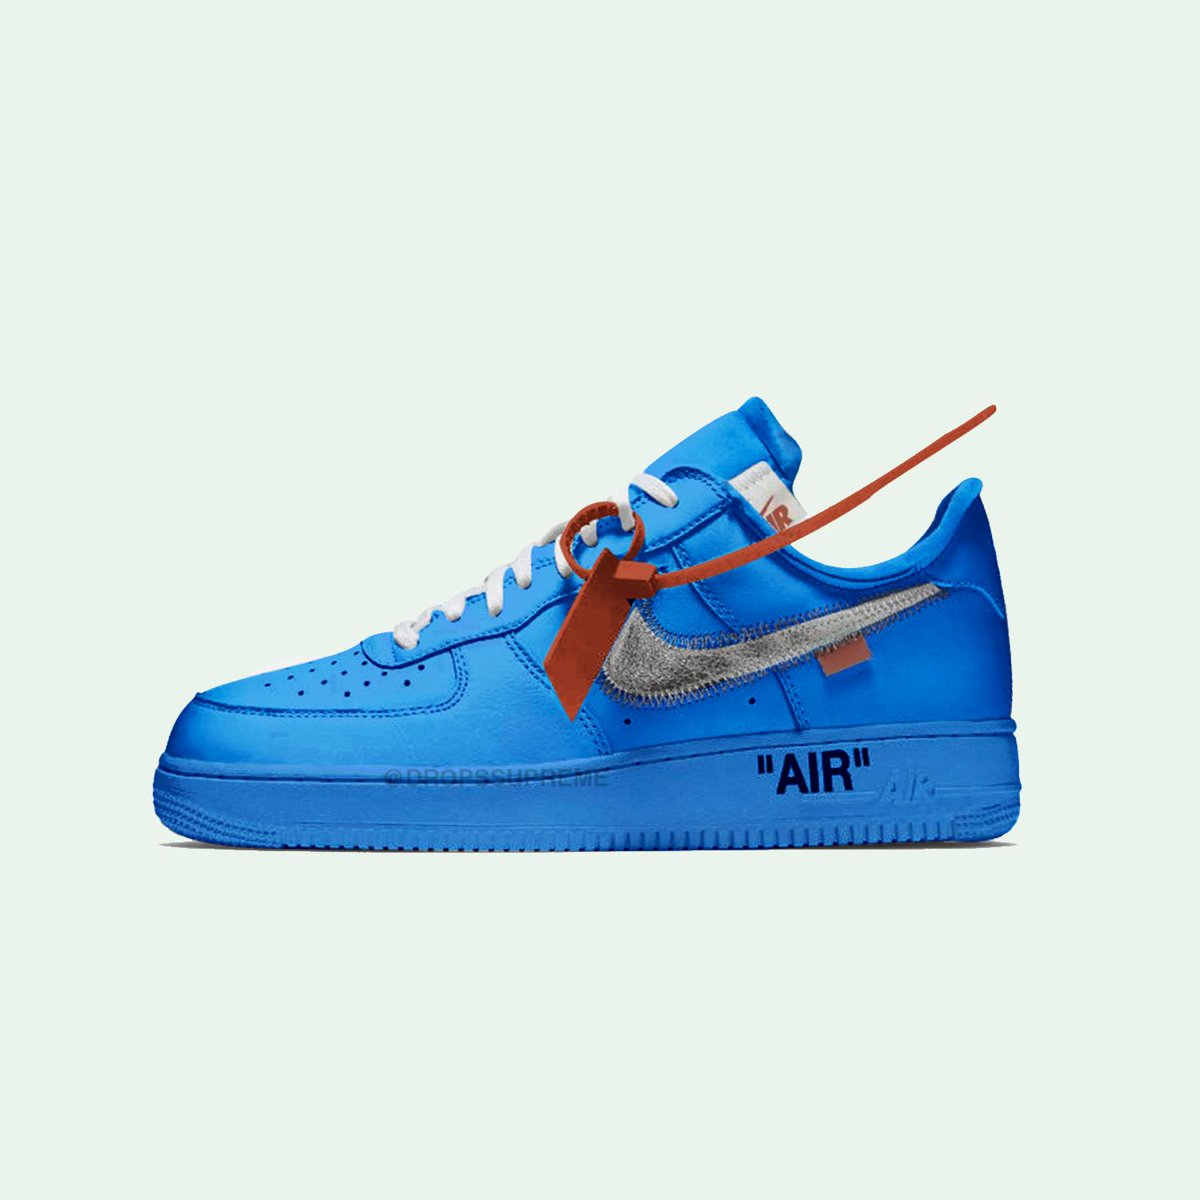 Virgil Abloh/Nike AF1 will be dropping